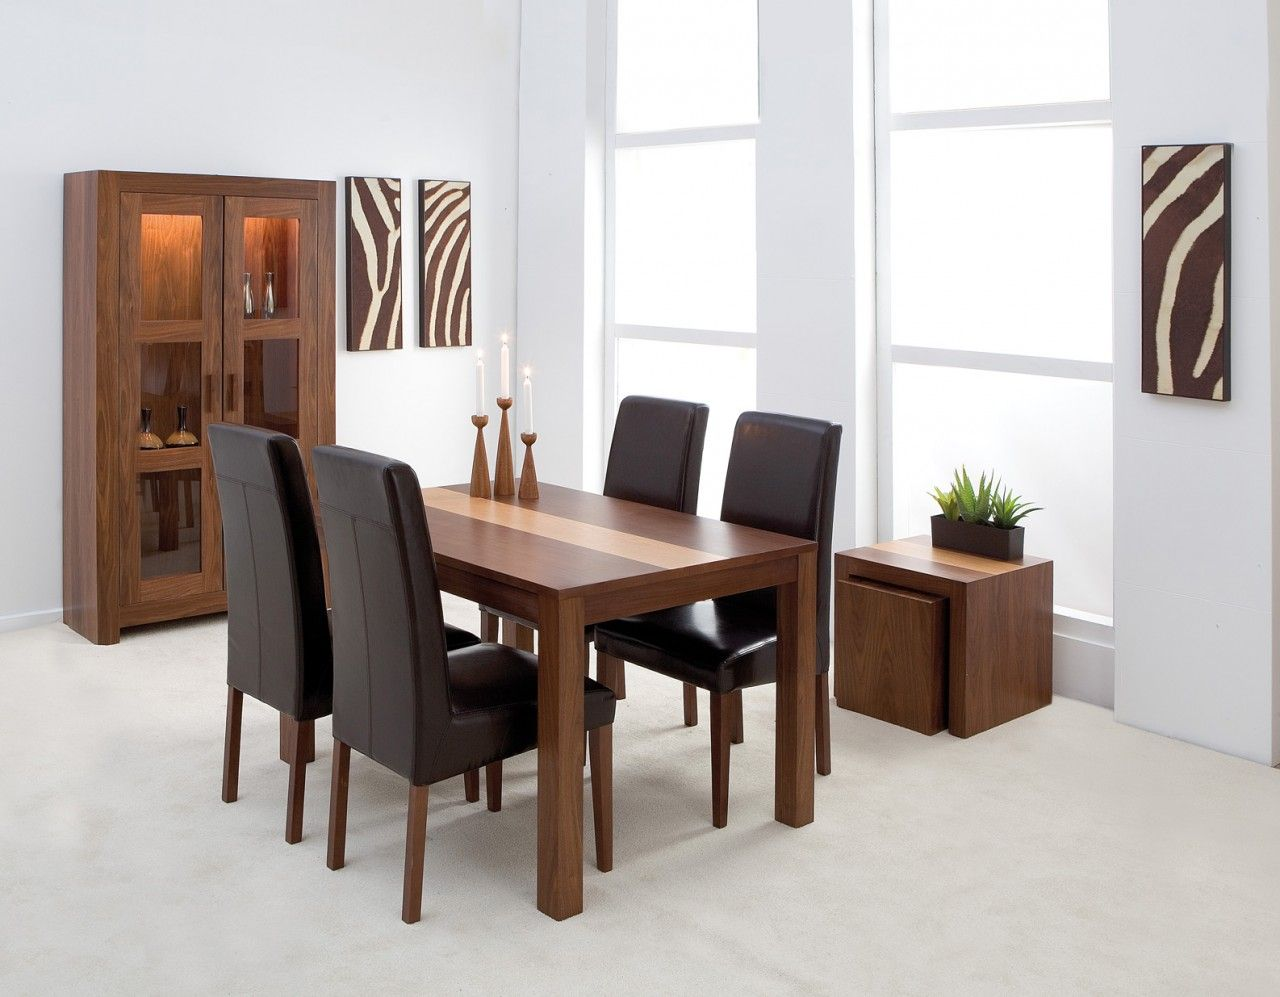 4 Chair Dining Table Set | Chair Sets | Pinterest